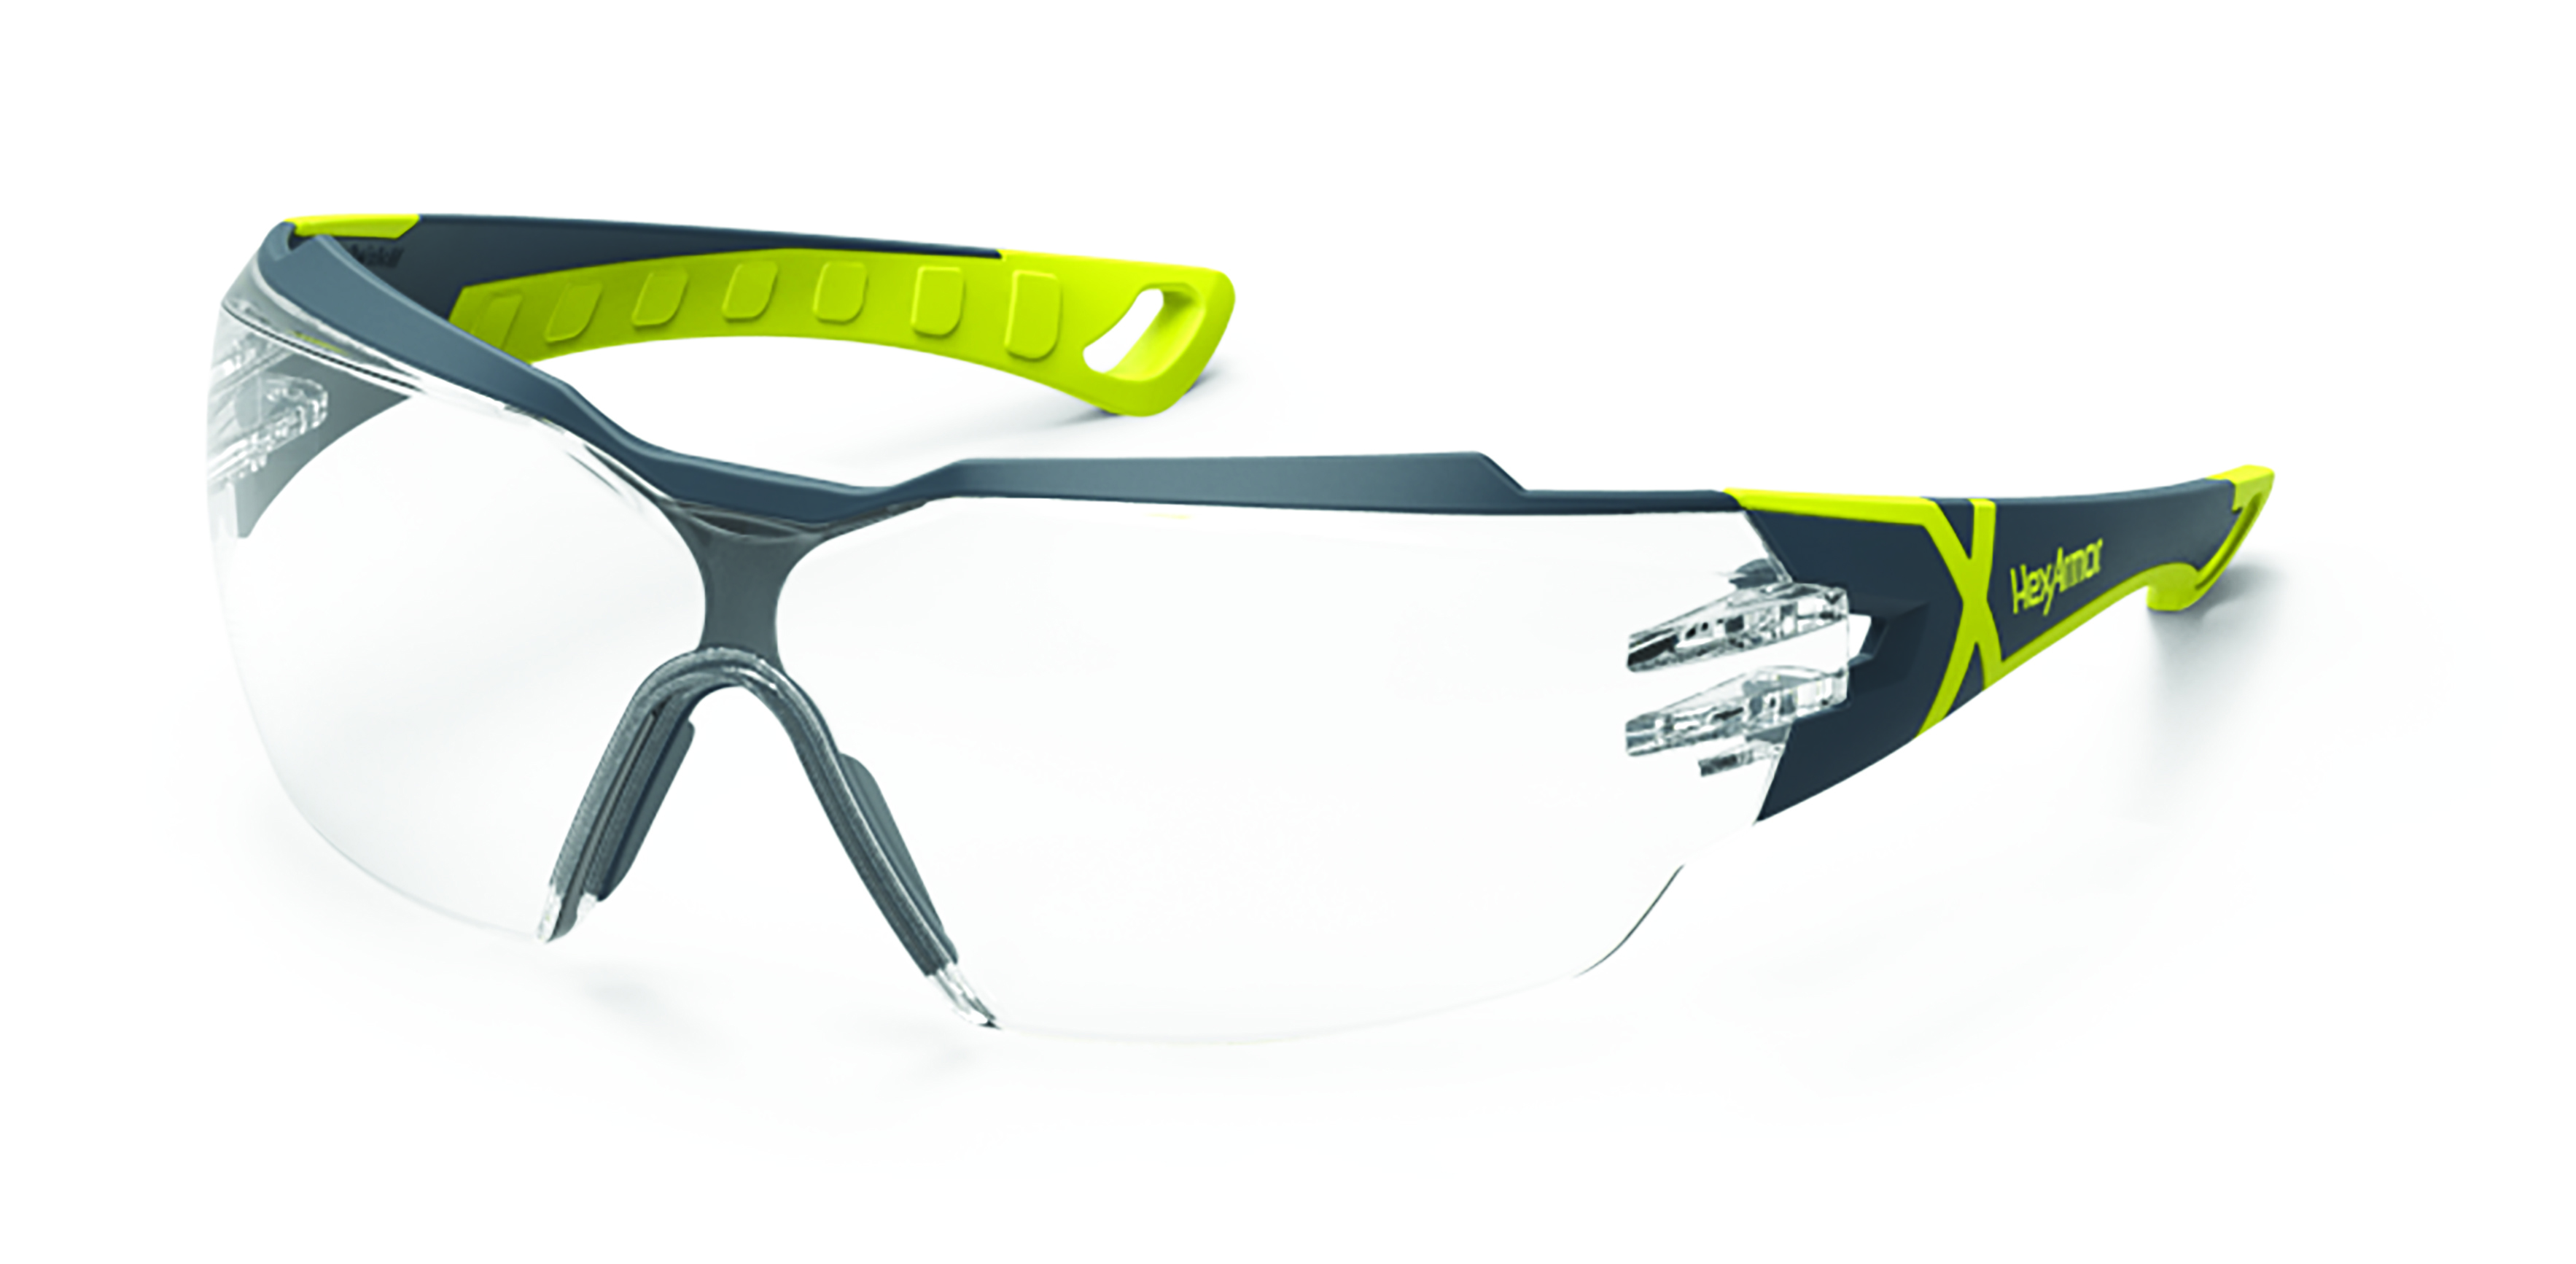 11-13001-02 - HexArmor® MX300 Eyewear-Green/Grey Frame, Clear Lens, TruShield® Coating-----UOM: 1/EA